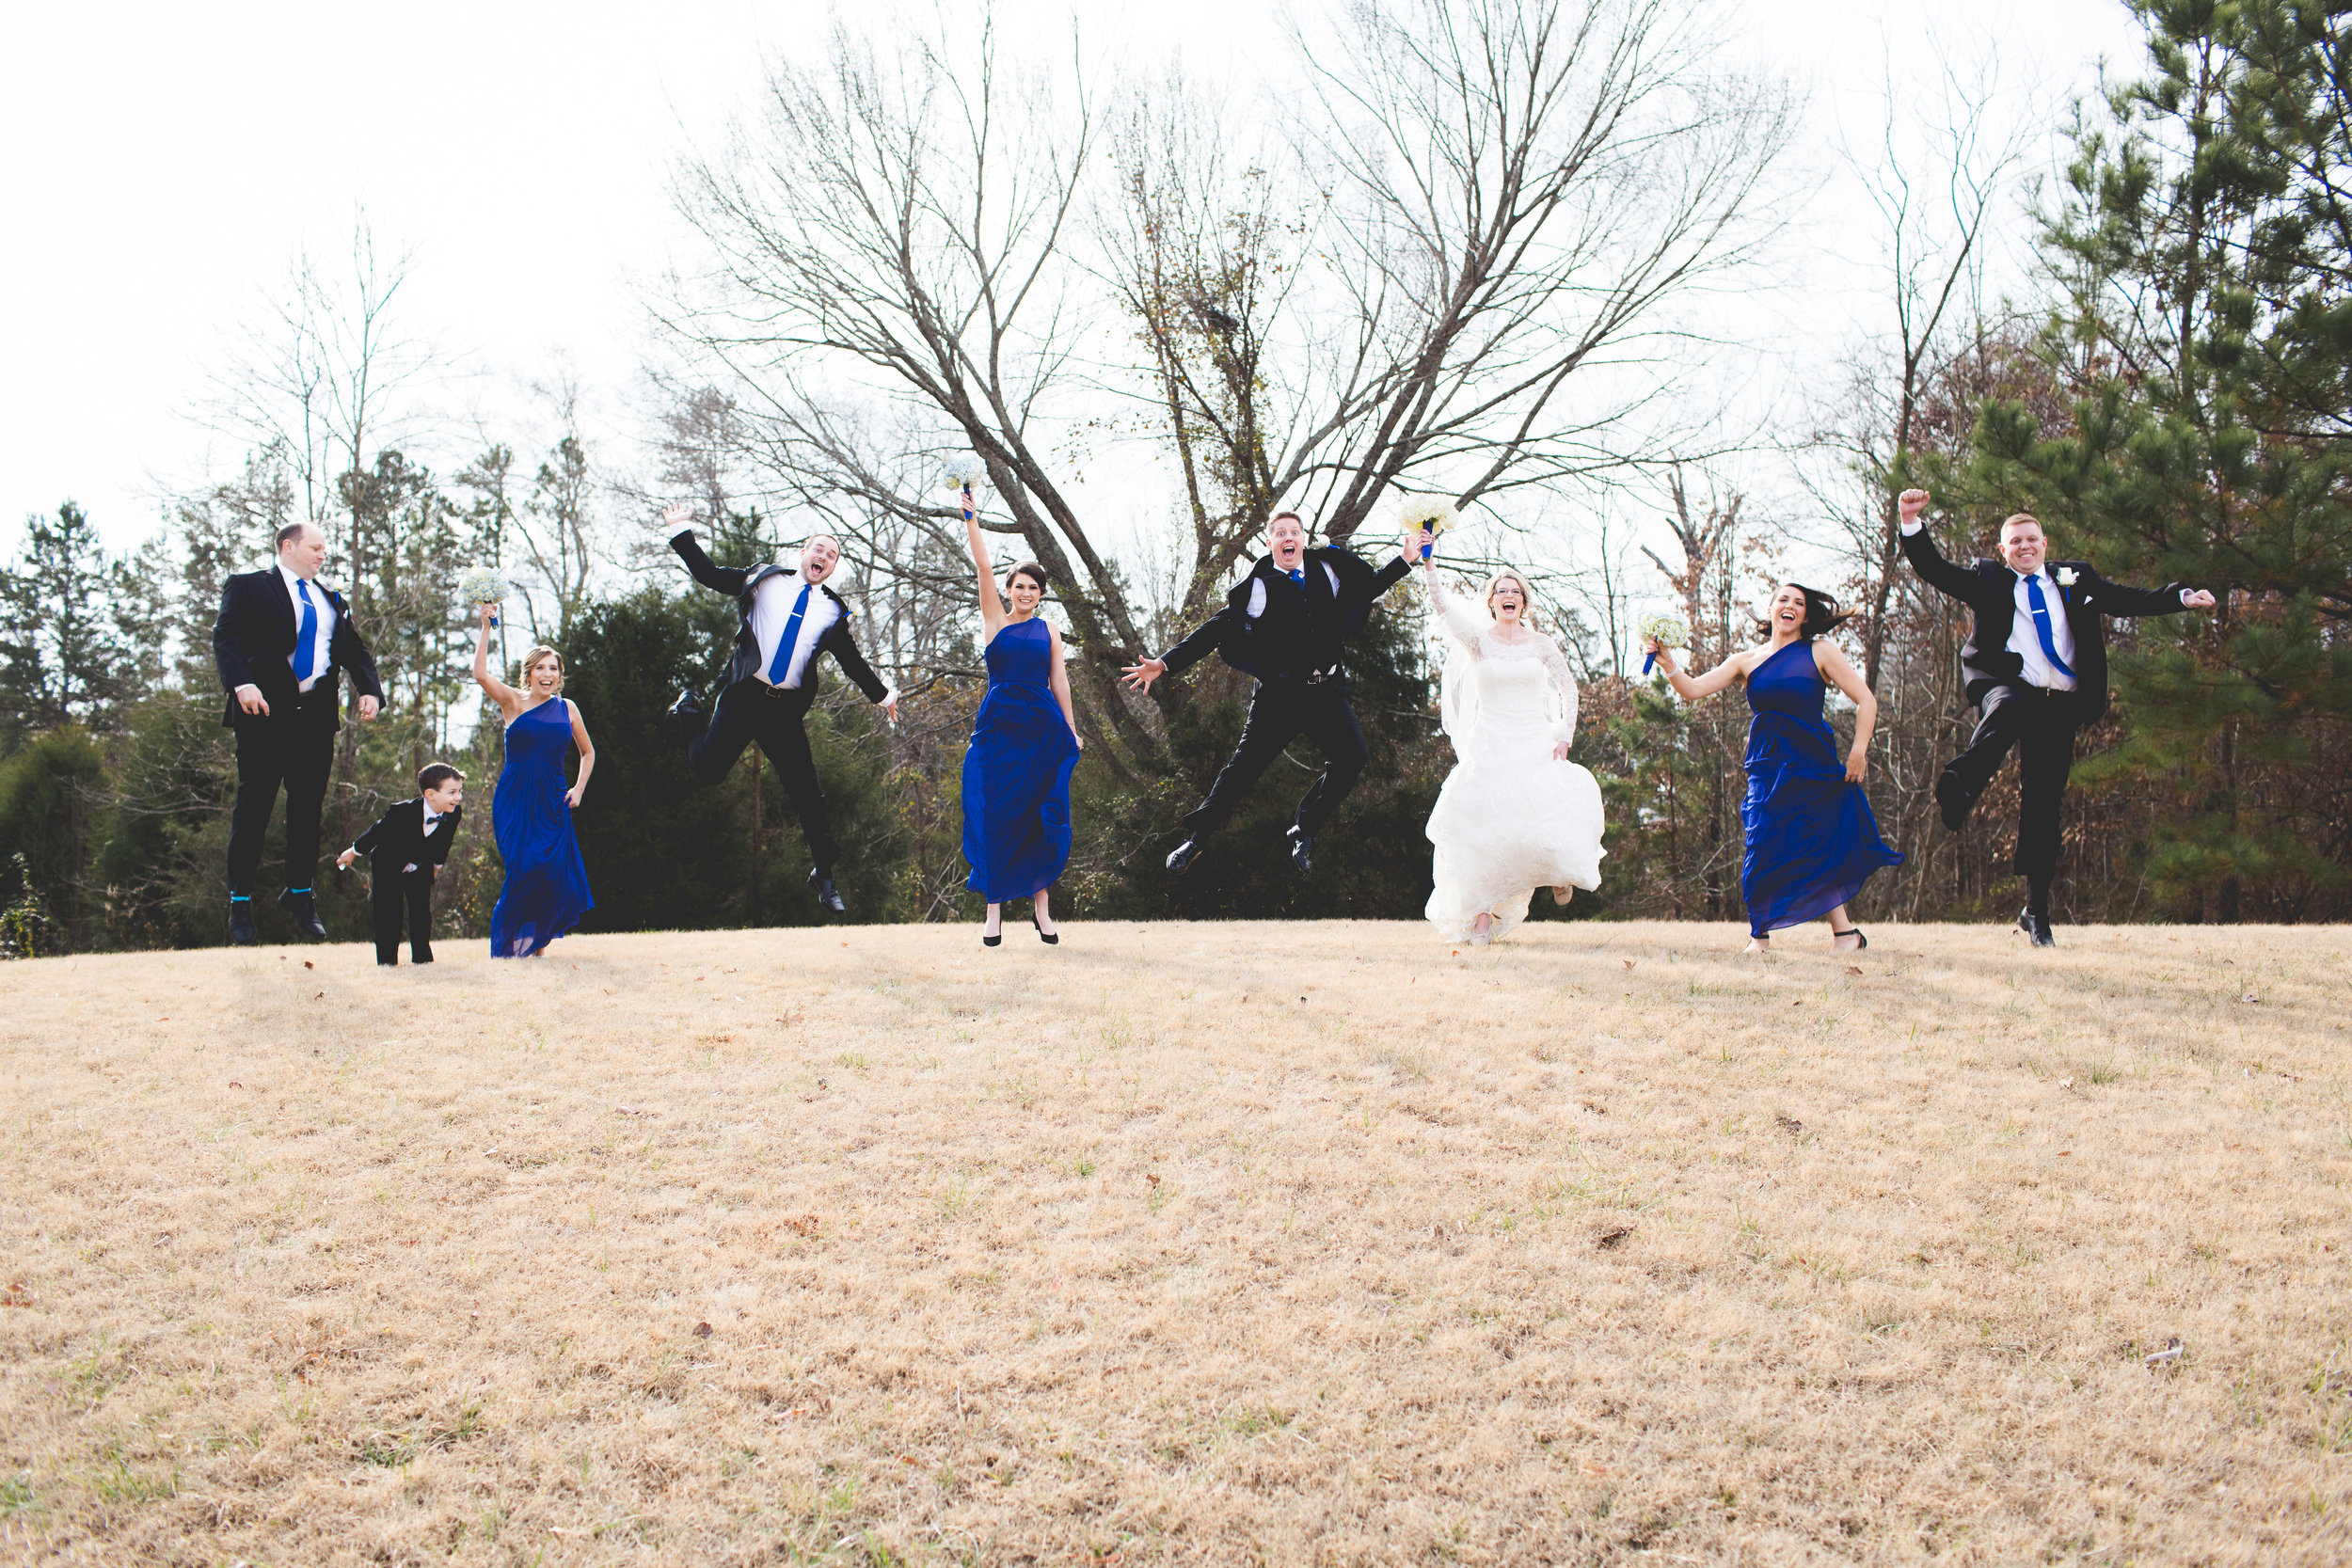 Jumping Bridal Party Photos